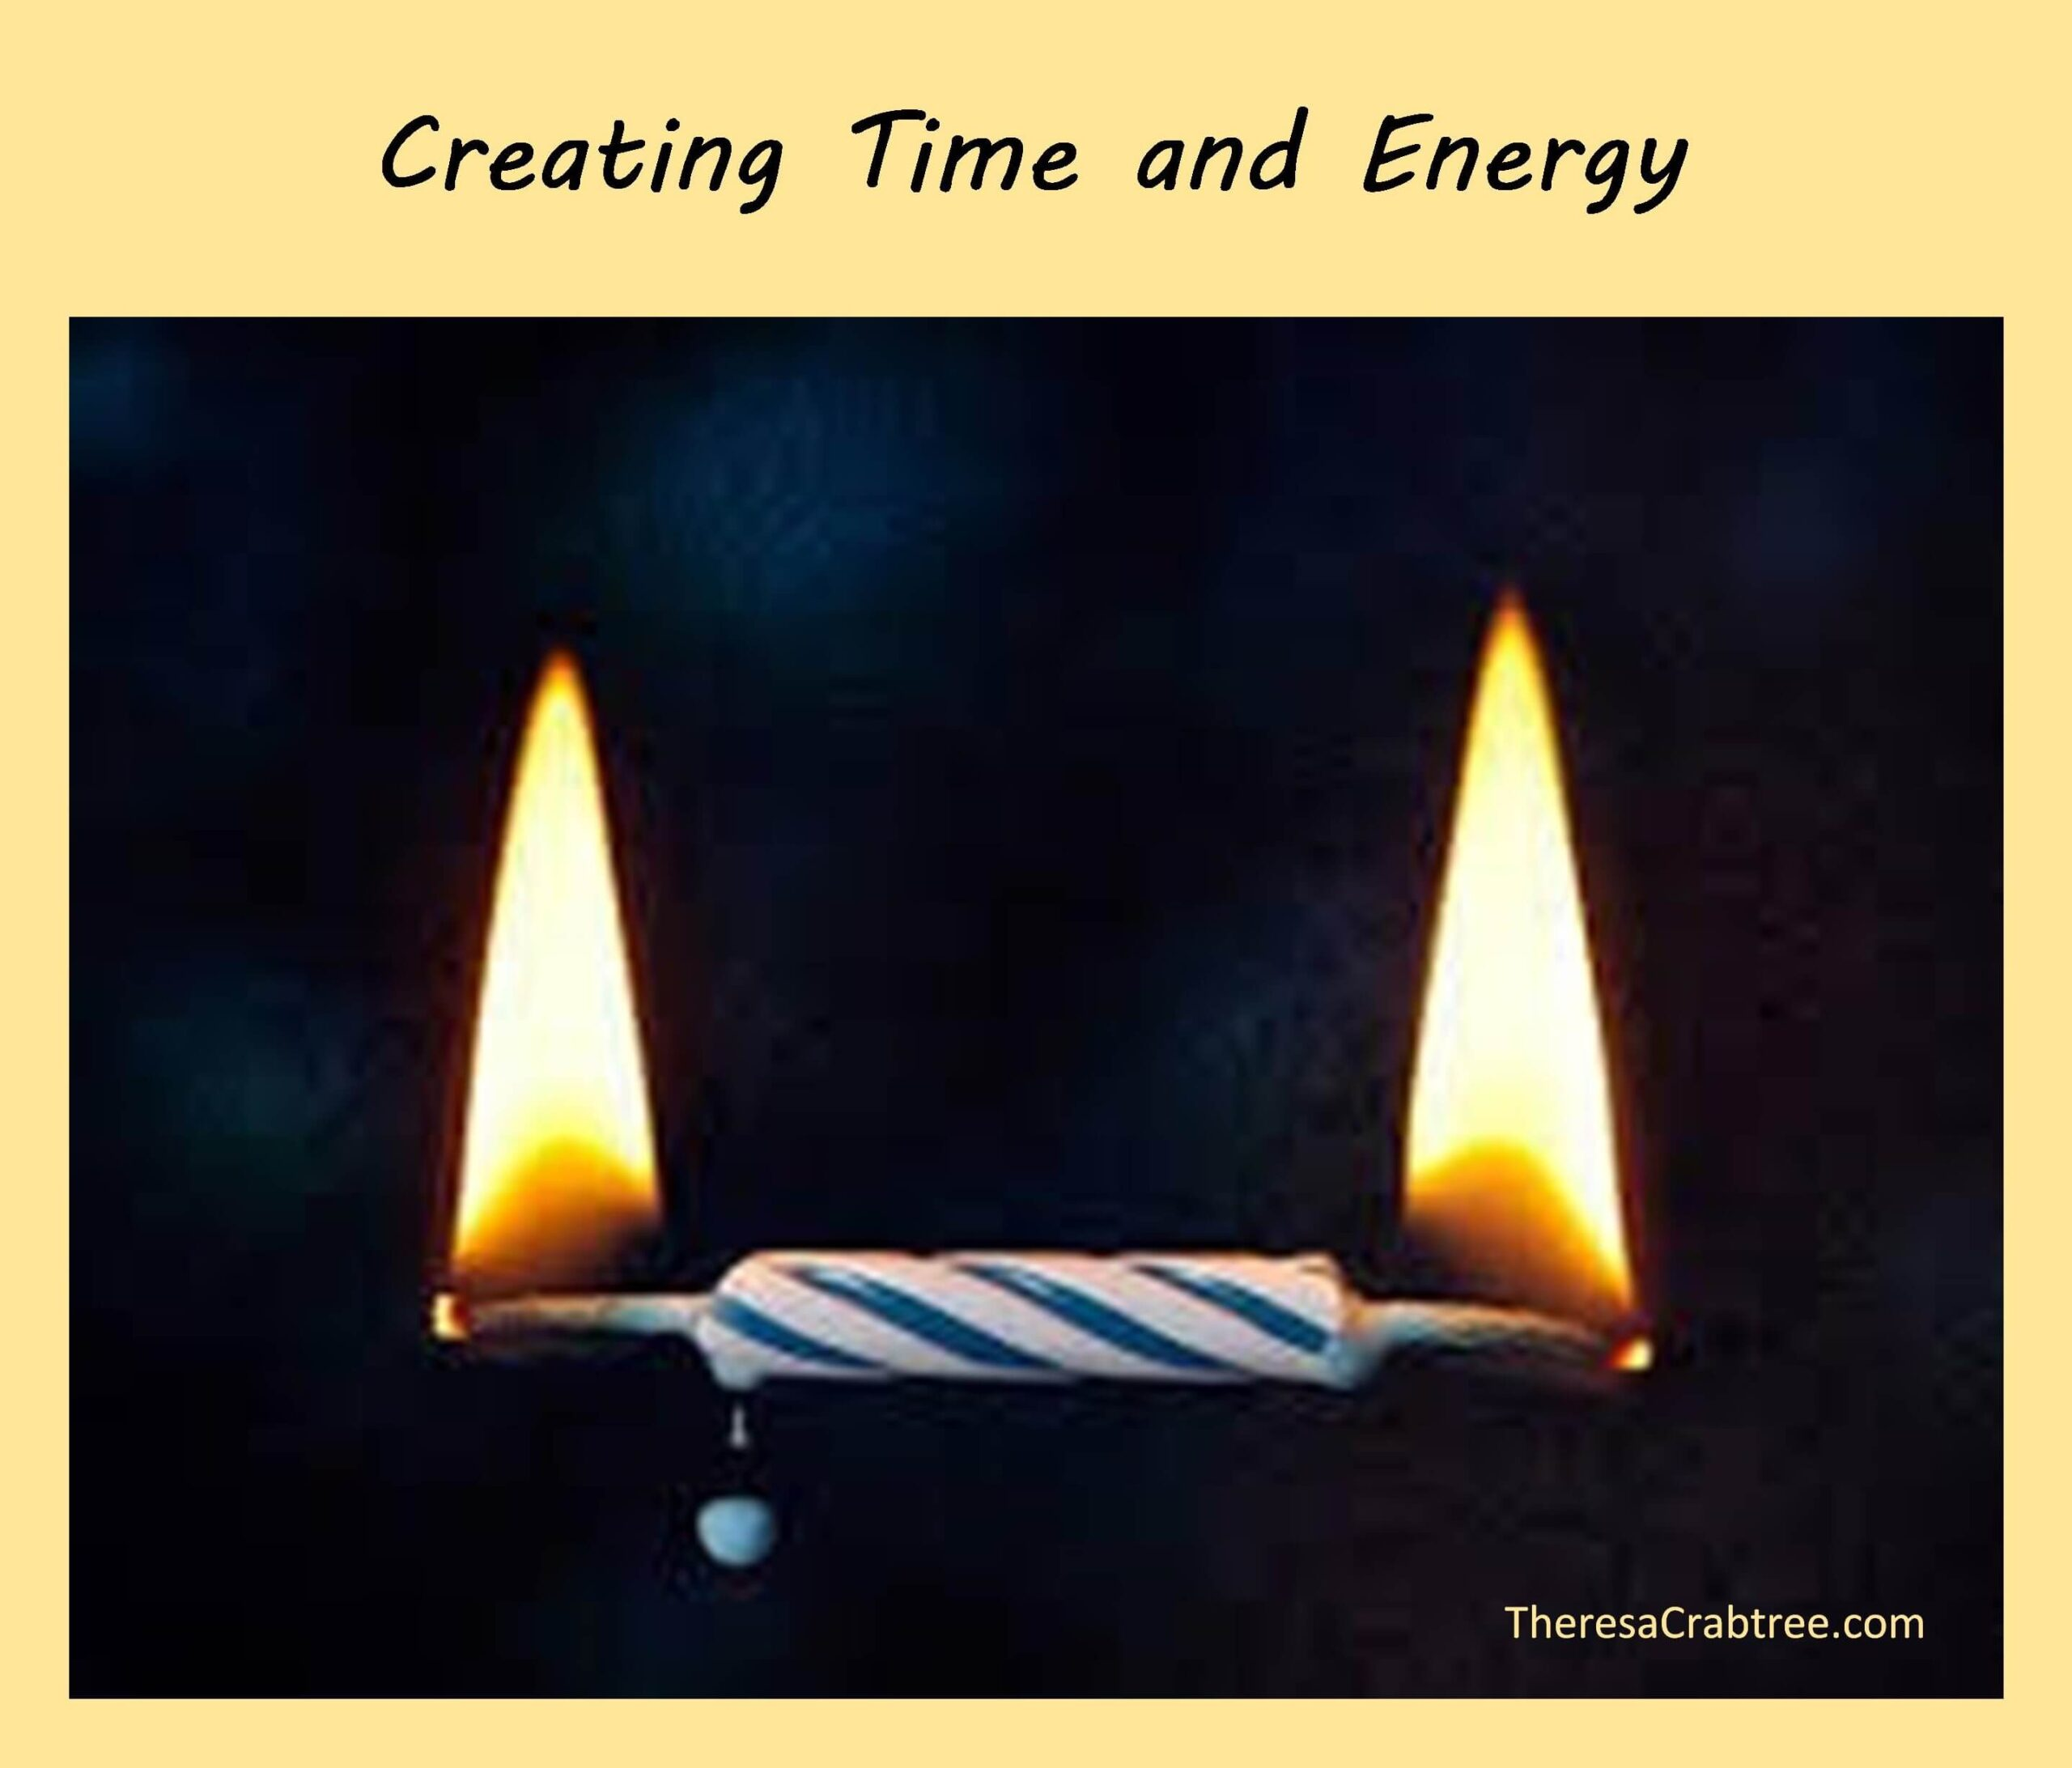 Creating Time and Energy